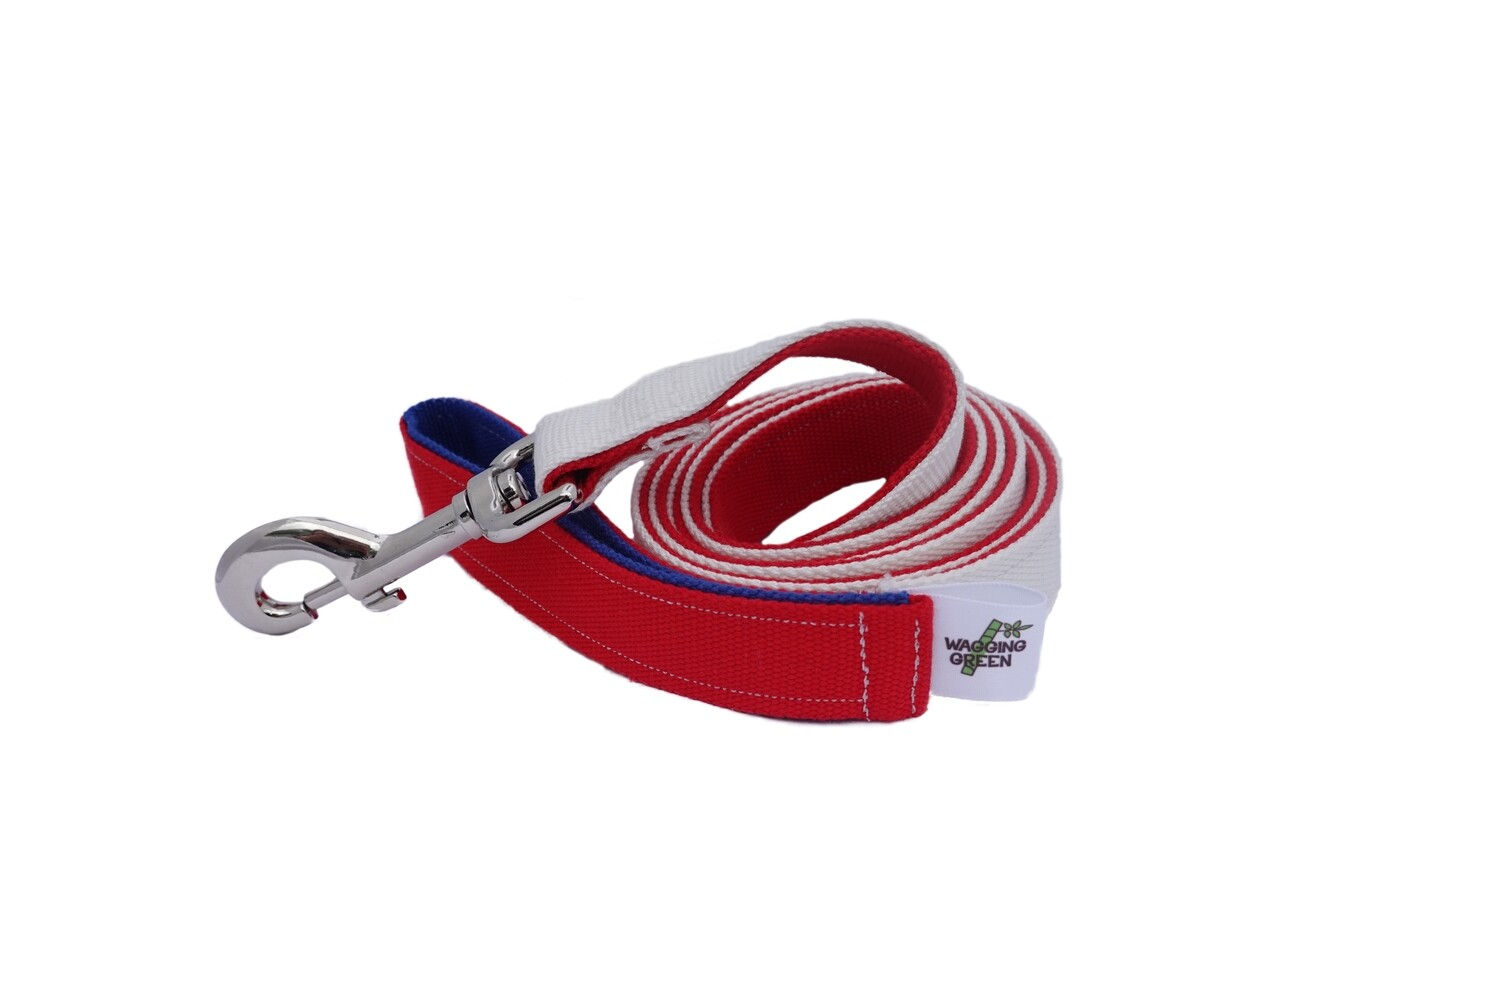 Eco Friendly  Bamboo Eco Hip Series Dog Leash - Red, White & Blue